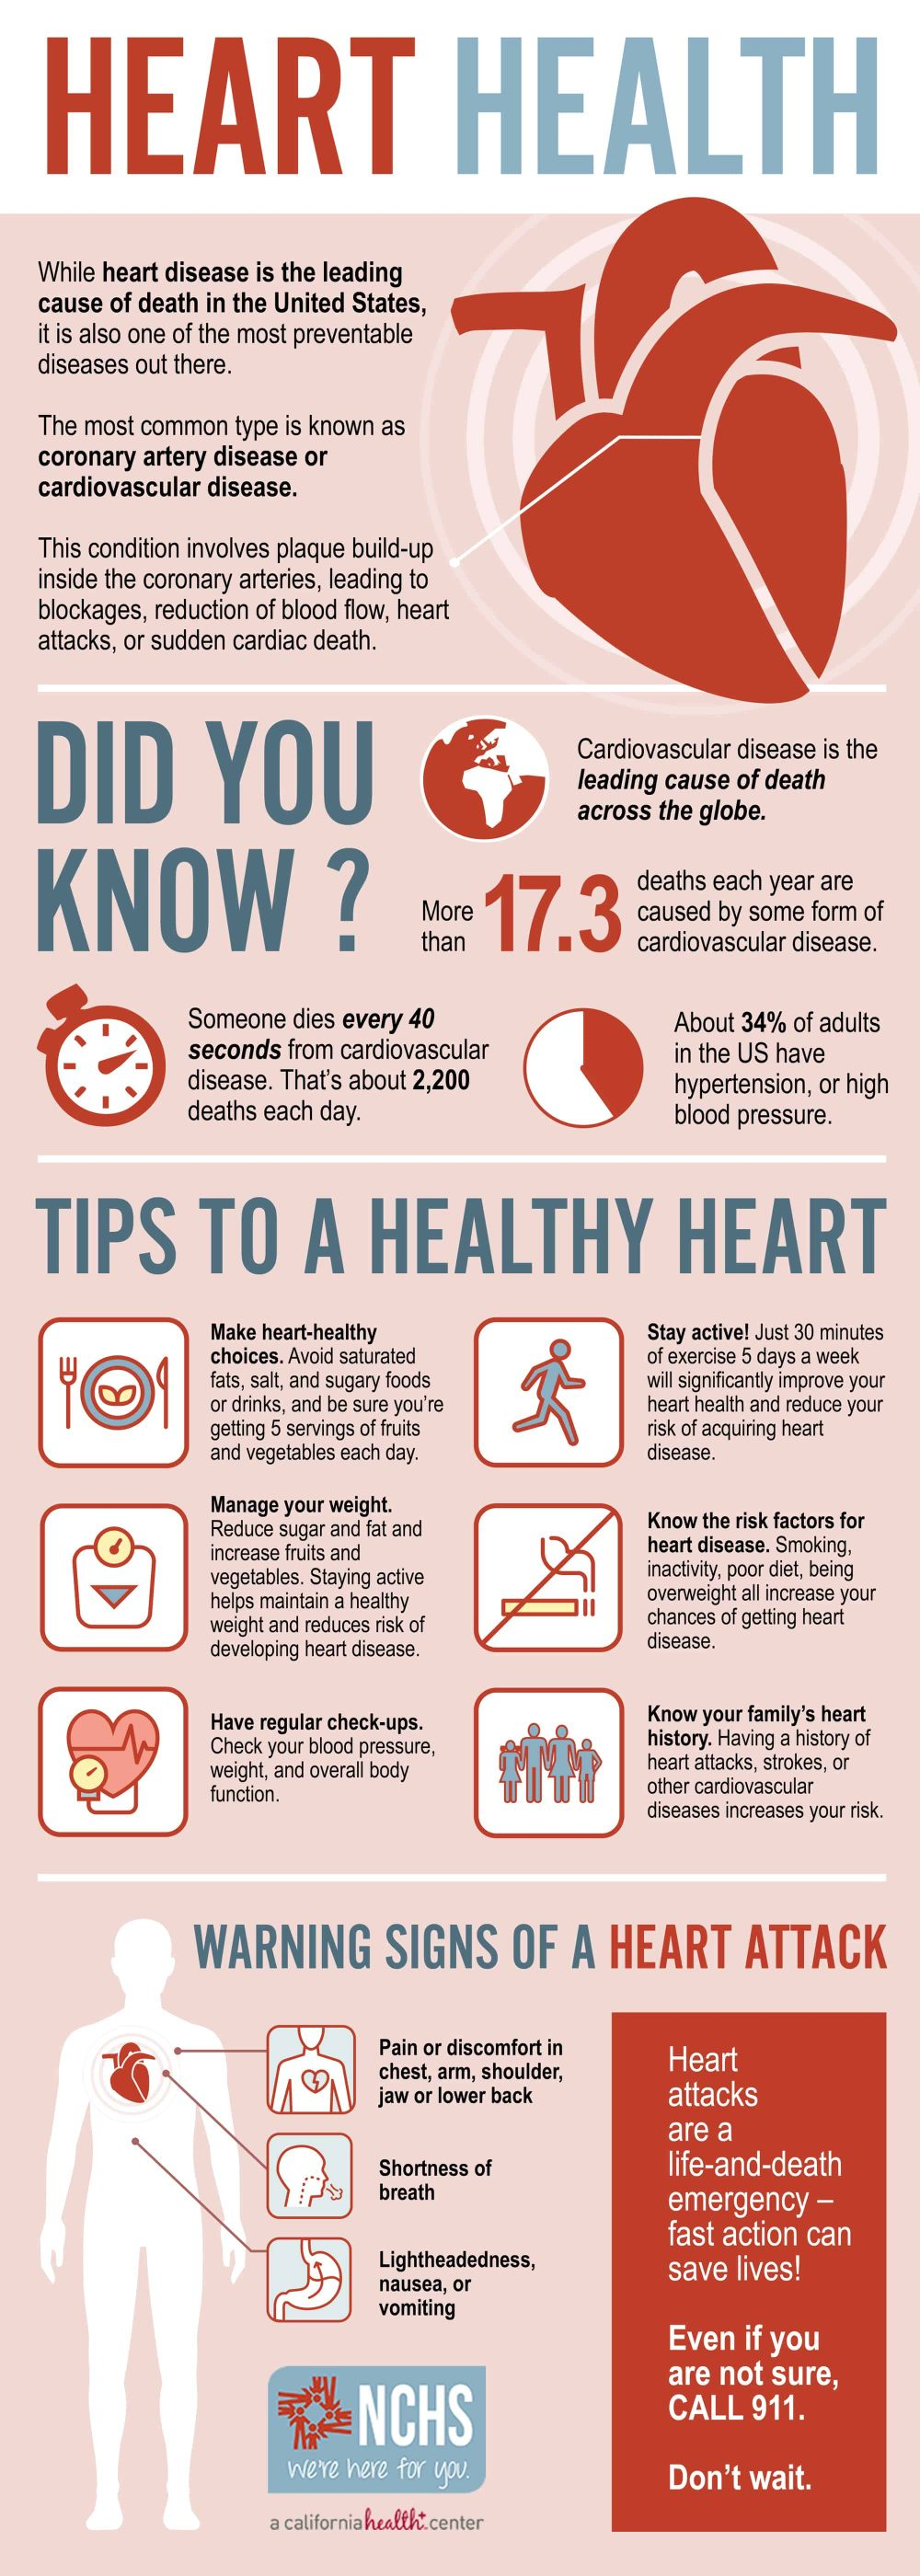 NCHS Heart Health Infographic